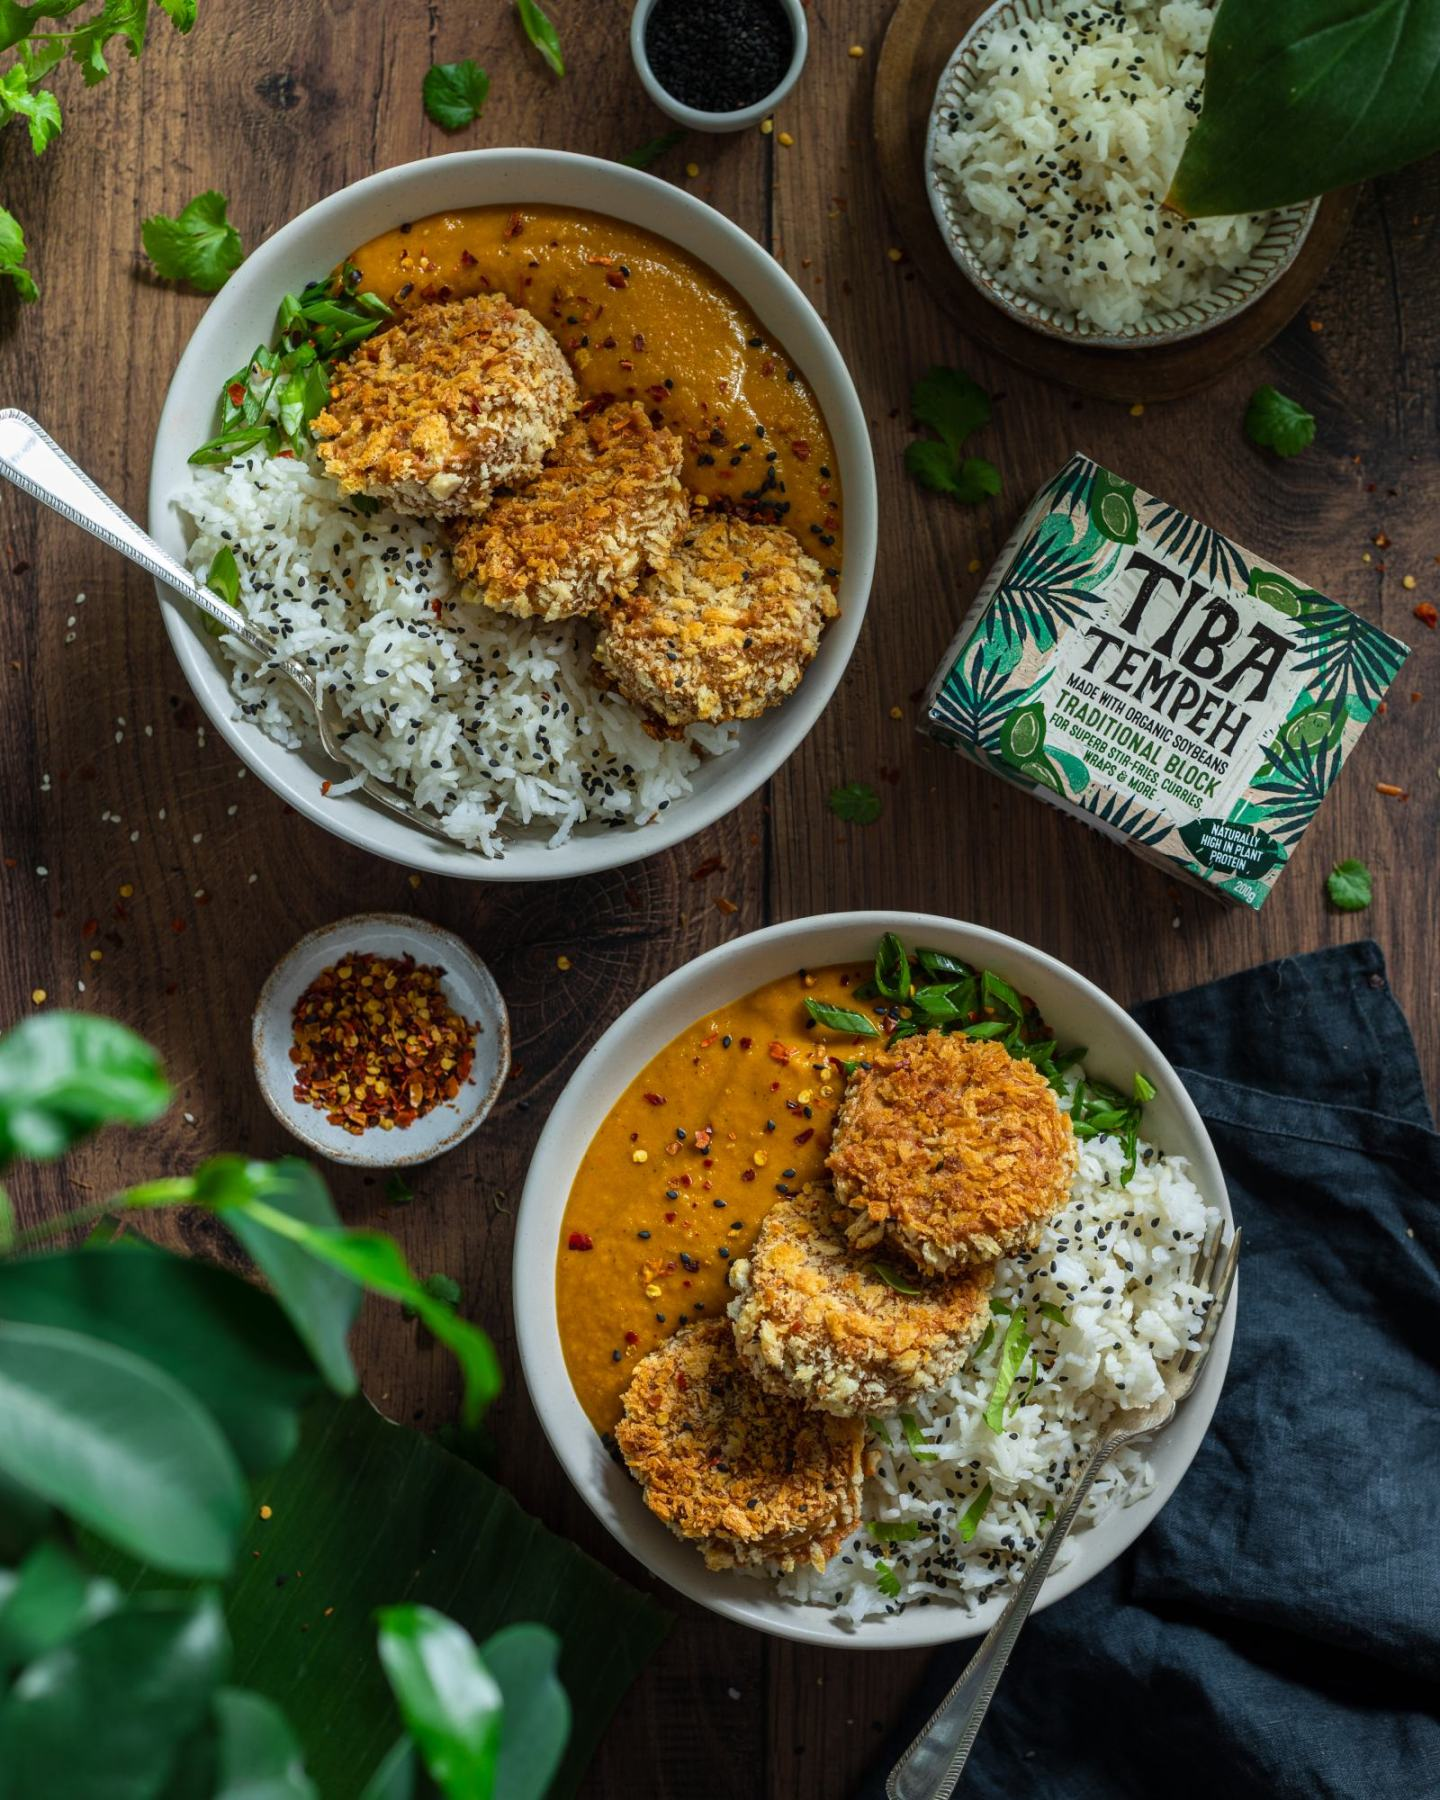 Vegan Katsu Curry with Tempeh - two bowls on a dark backdrop, rice and katsu sauce on each bowl with a fork, crunchy fried tempeh discs on the top (3 on each plate), tiba tempeh packaging placed besides the bowls